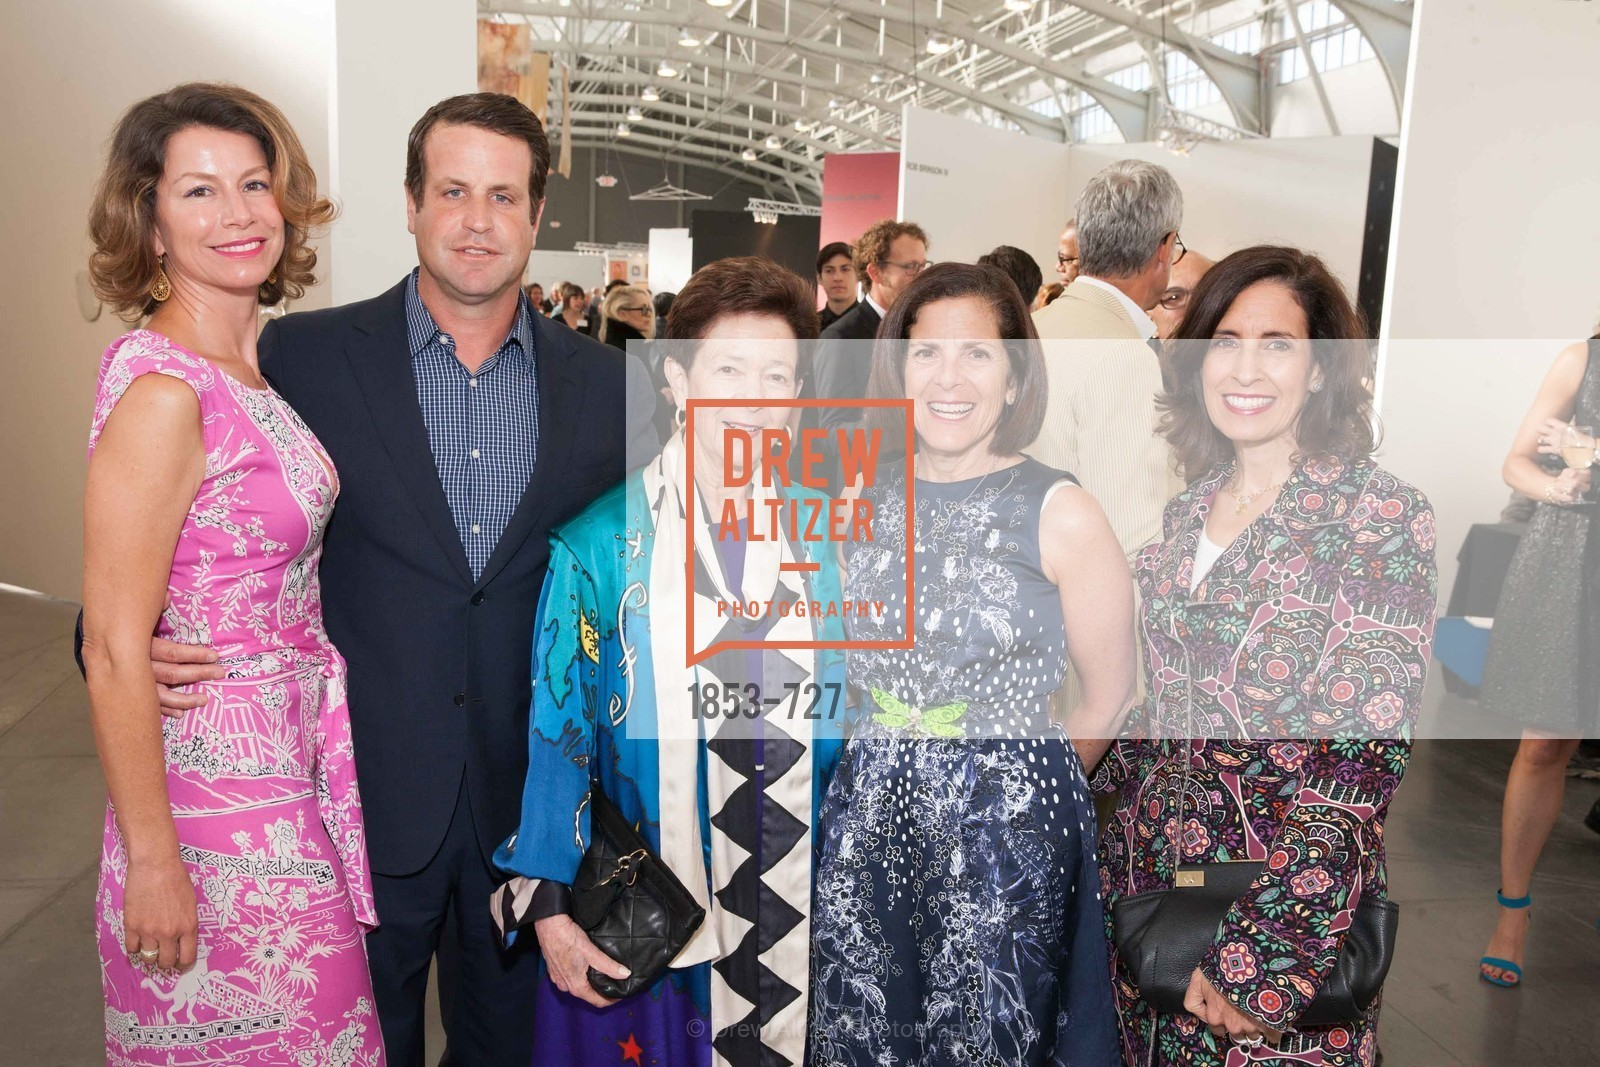 Simone LaCorte, Nick Heldfond, Cissie Swig, Marjorie Swig, Darian Swig, SAN FRANCISCO ART INSTITUTE Gala Honoring Art Visionary and Advocate ROSELYNE CHROMAN SWIG, US, May 13th, 2015,Drew Altizer, Drew Altizer Photography, full-service agency, private events, San Francisco photographer, photographer california